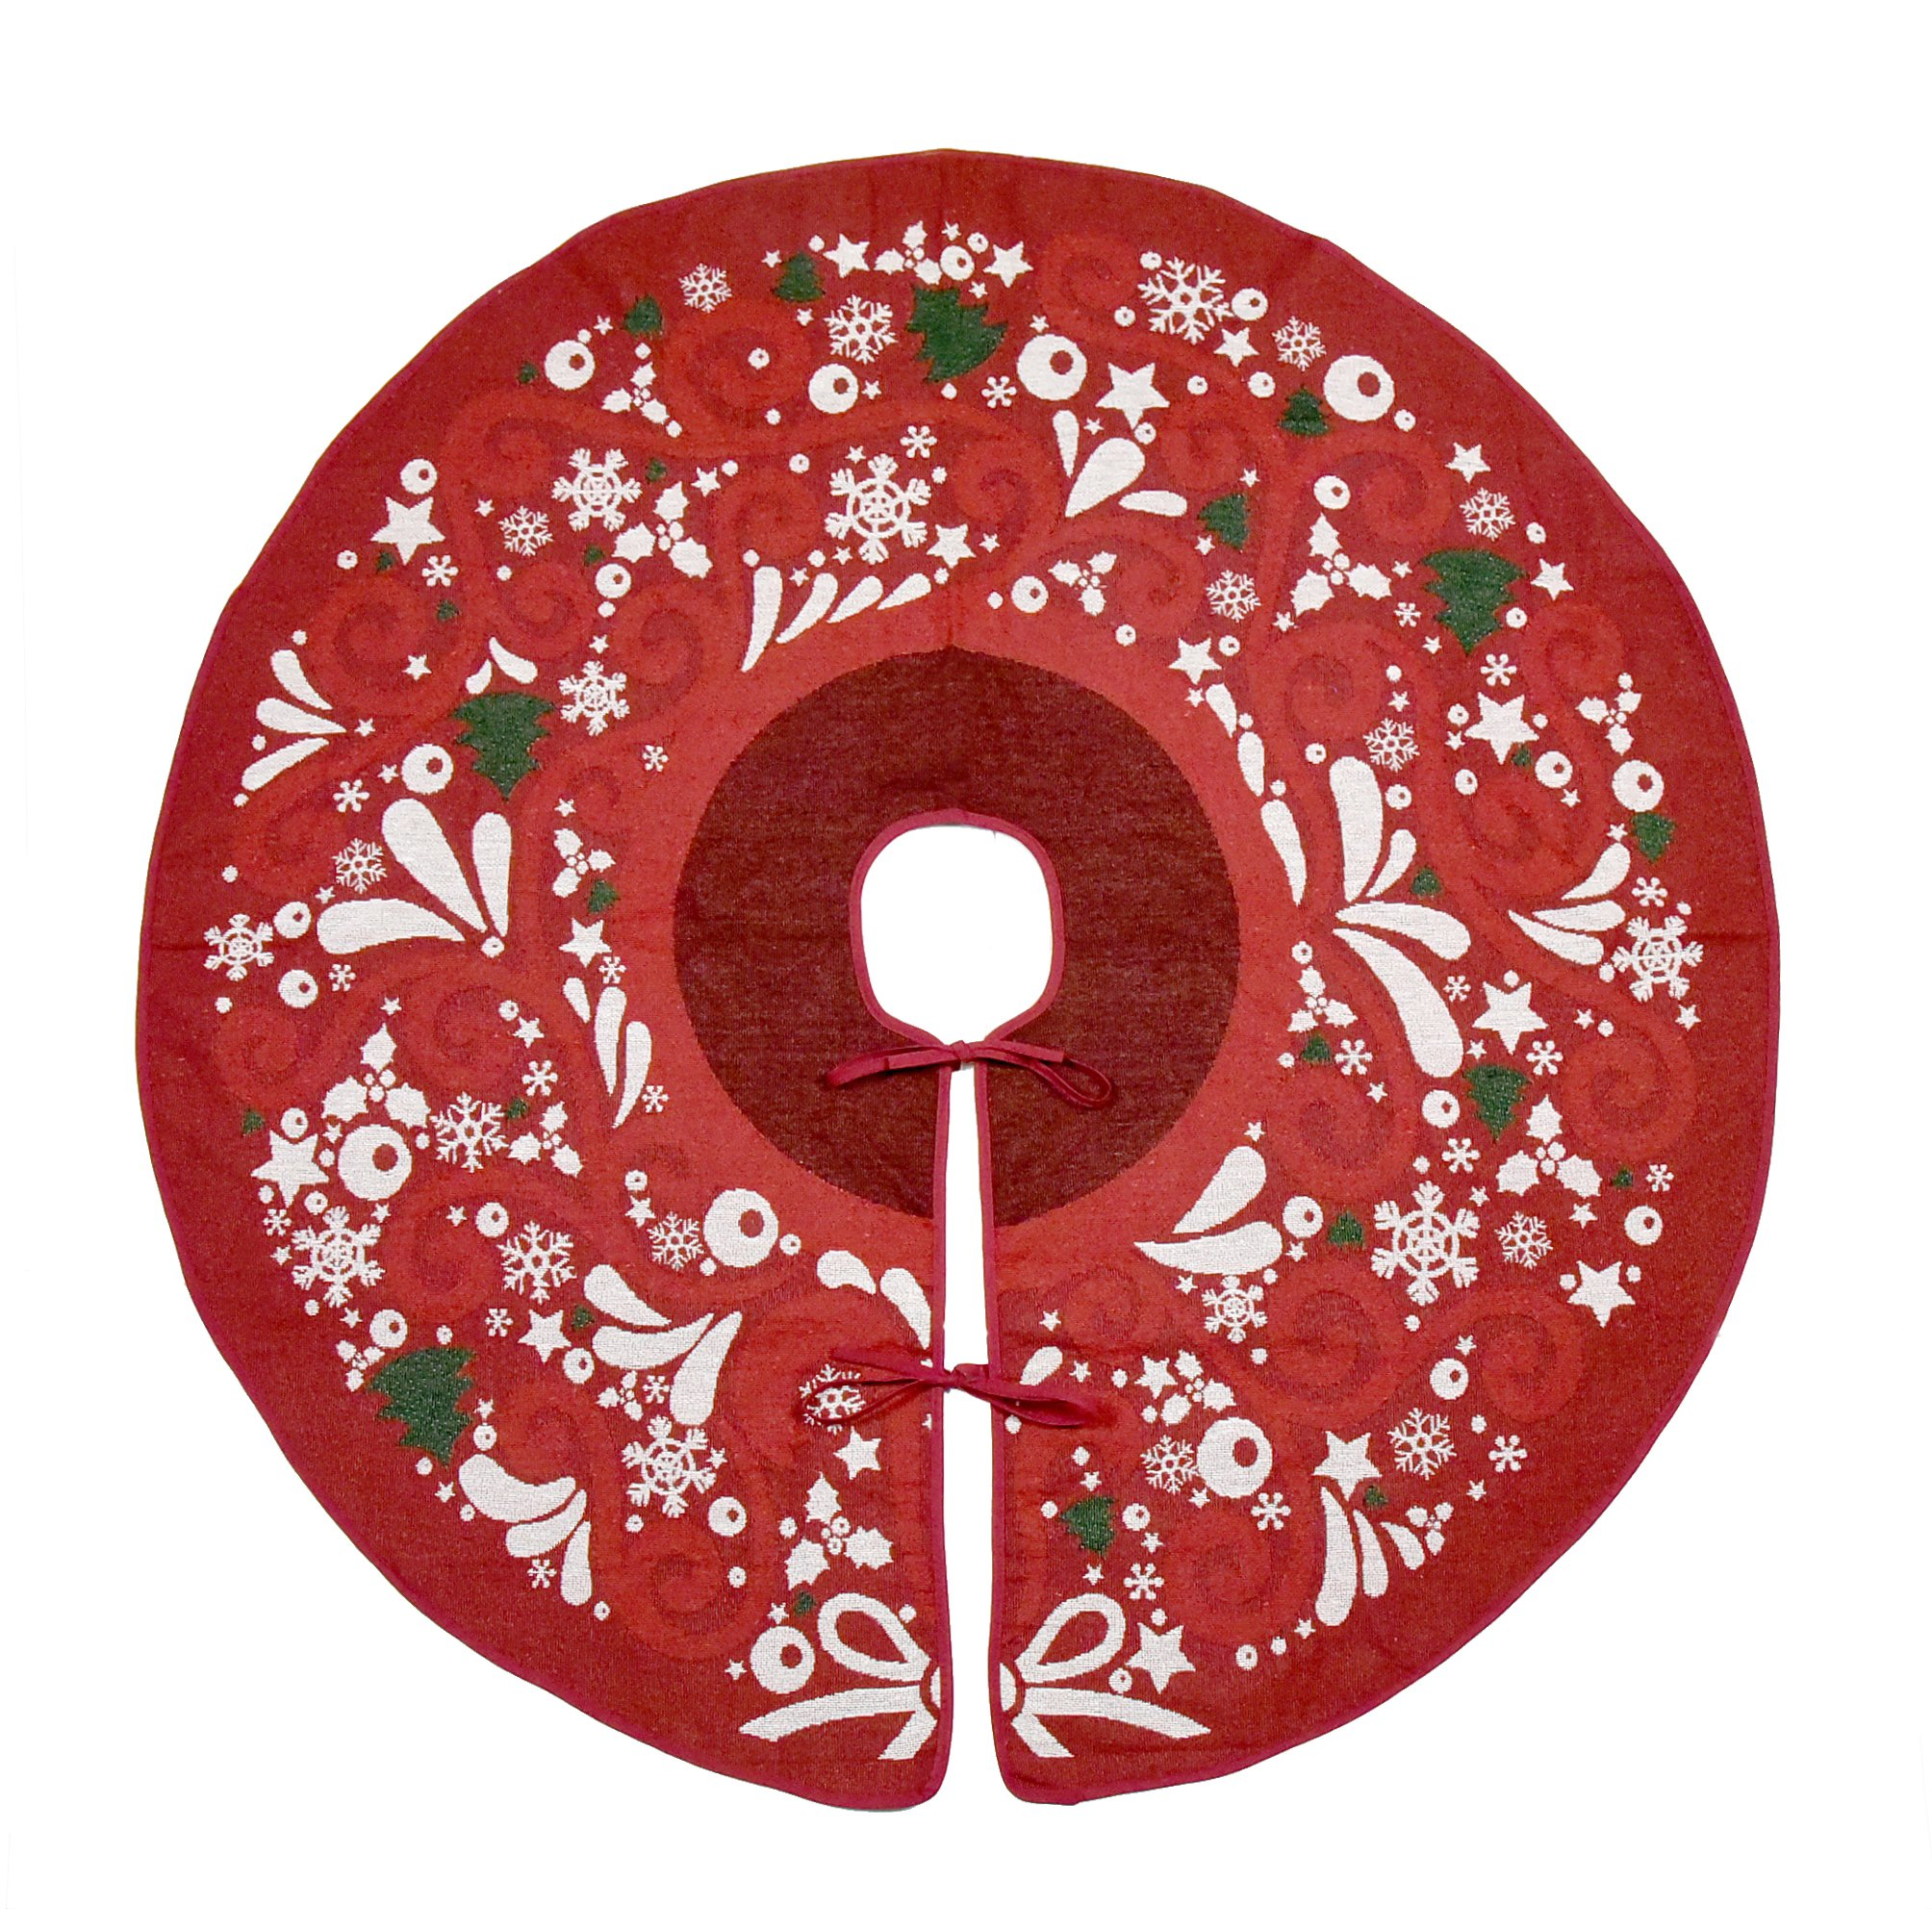 Primode Red Xmas Tree Skirt 50'', Jacquard Stitched Woven in Holiday Images, Holiday Tree Ornament Decoration